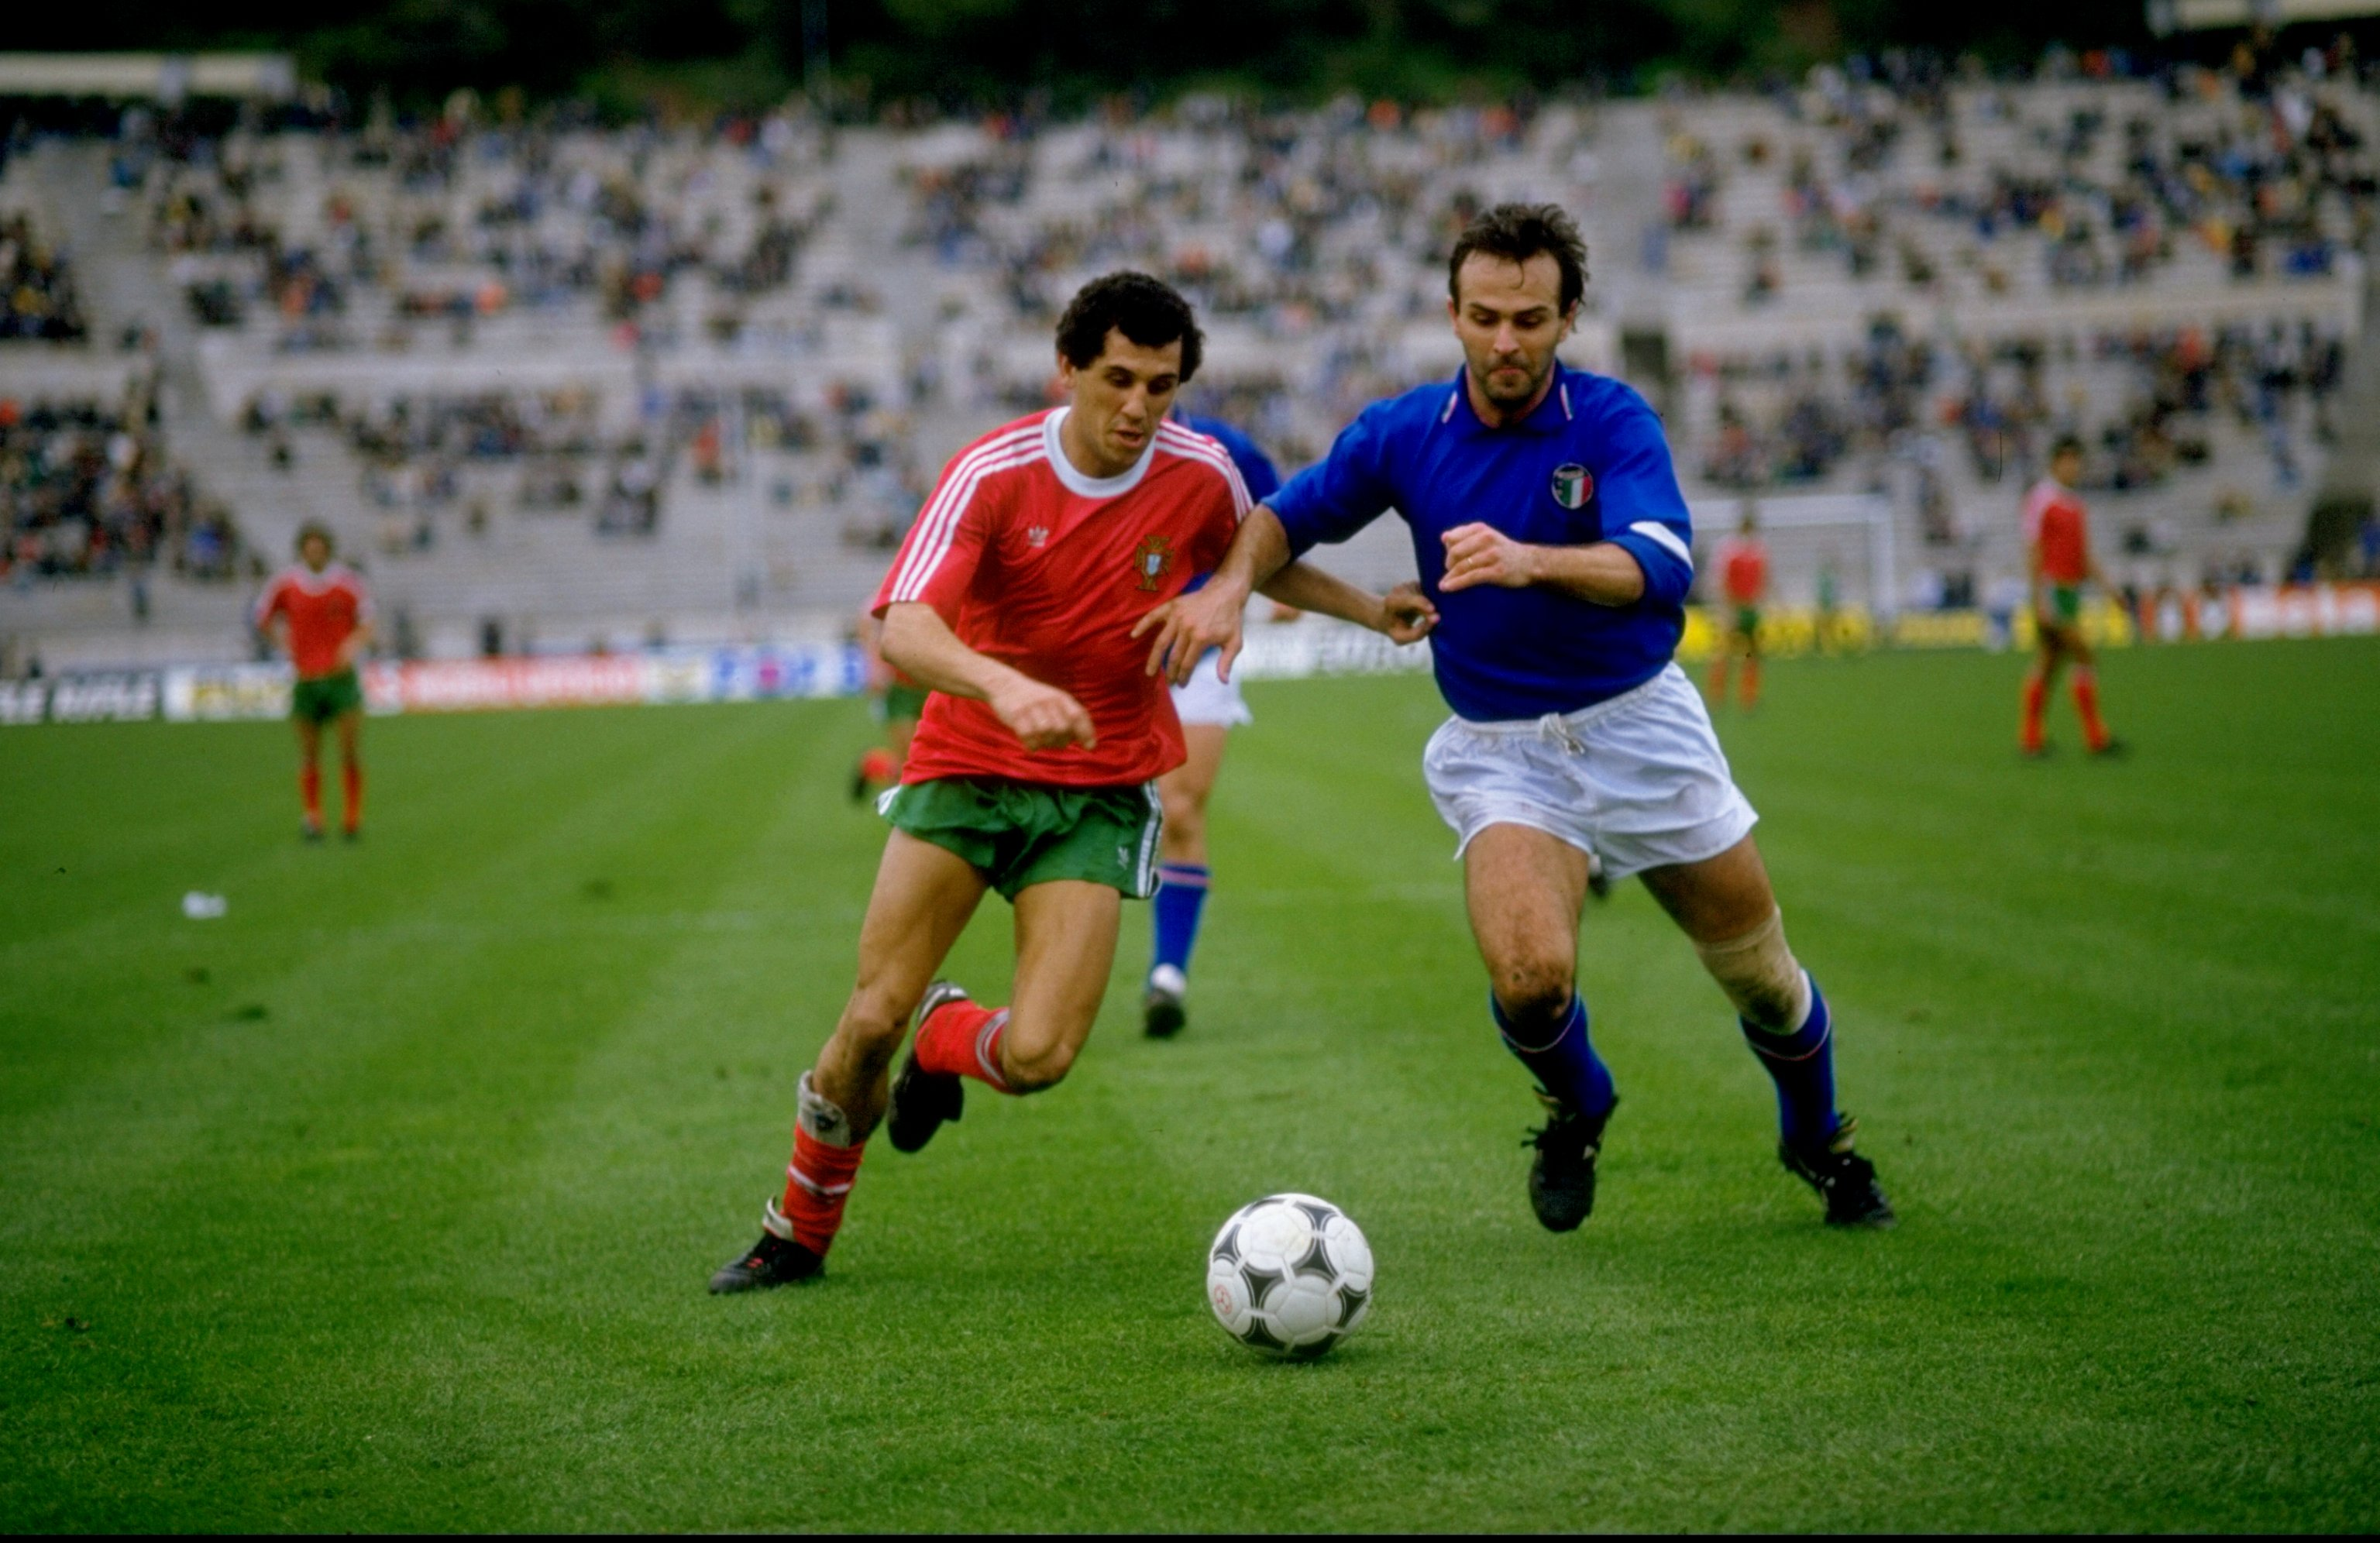 14 Feb 1987:  Cabrini of Italy takes on Jaime of Portugal during the European Championship qualifying match against Portugal played in Lisbon, Portugal.  Italy won the match 1-0.  \ Mandatory Credit: Allsport UK /Allsport